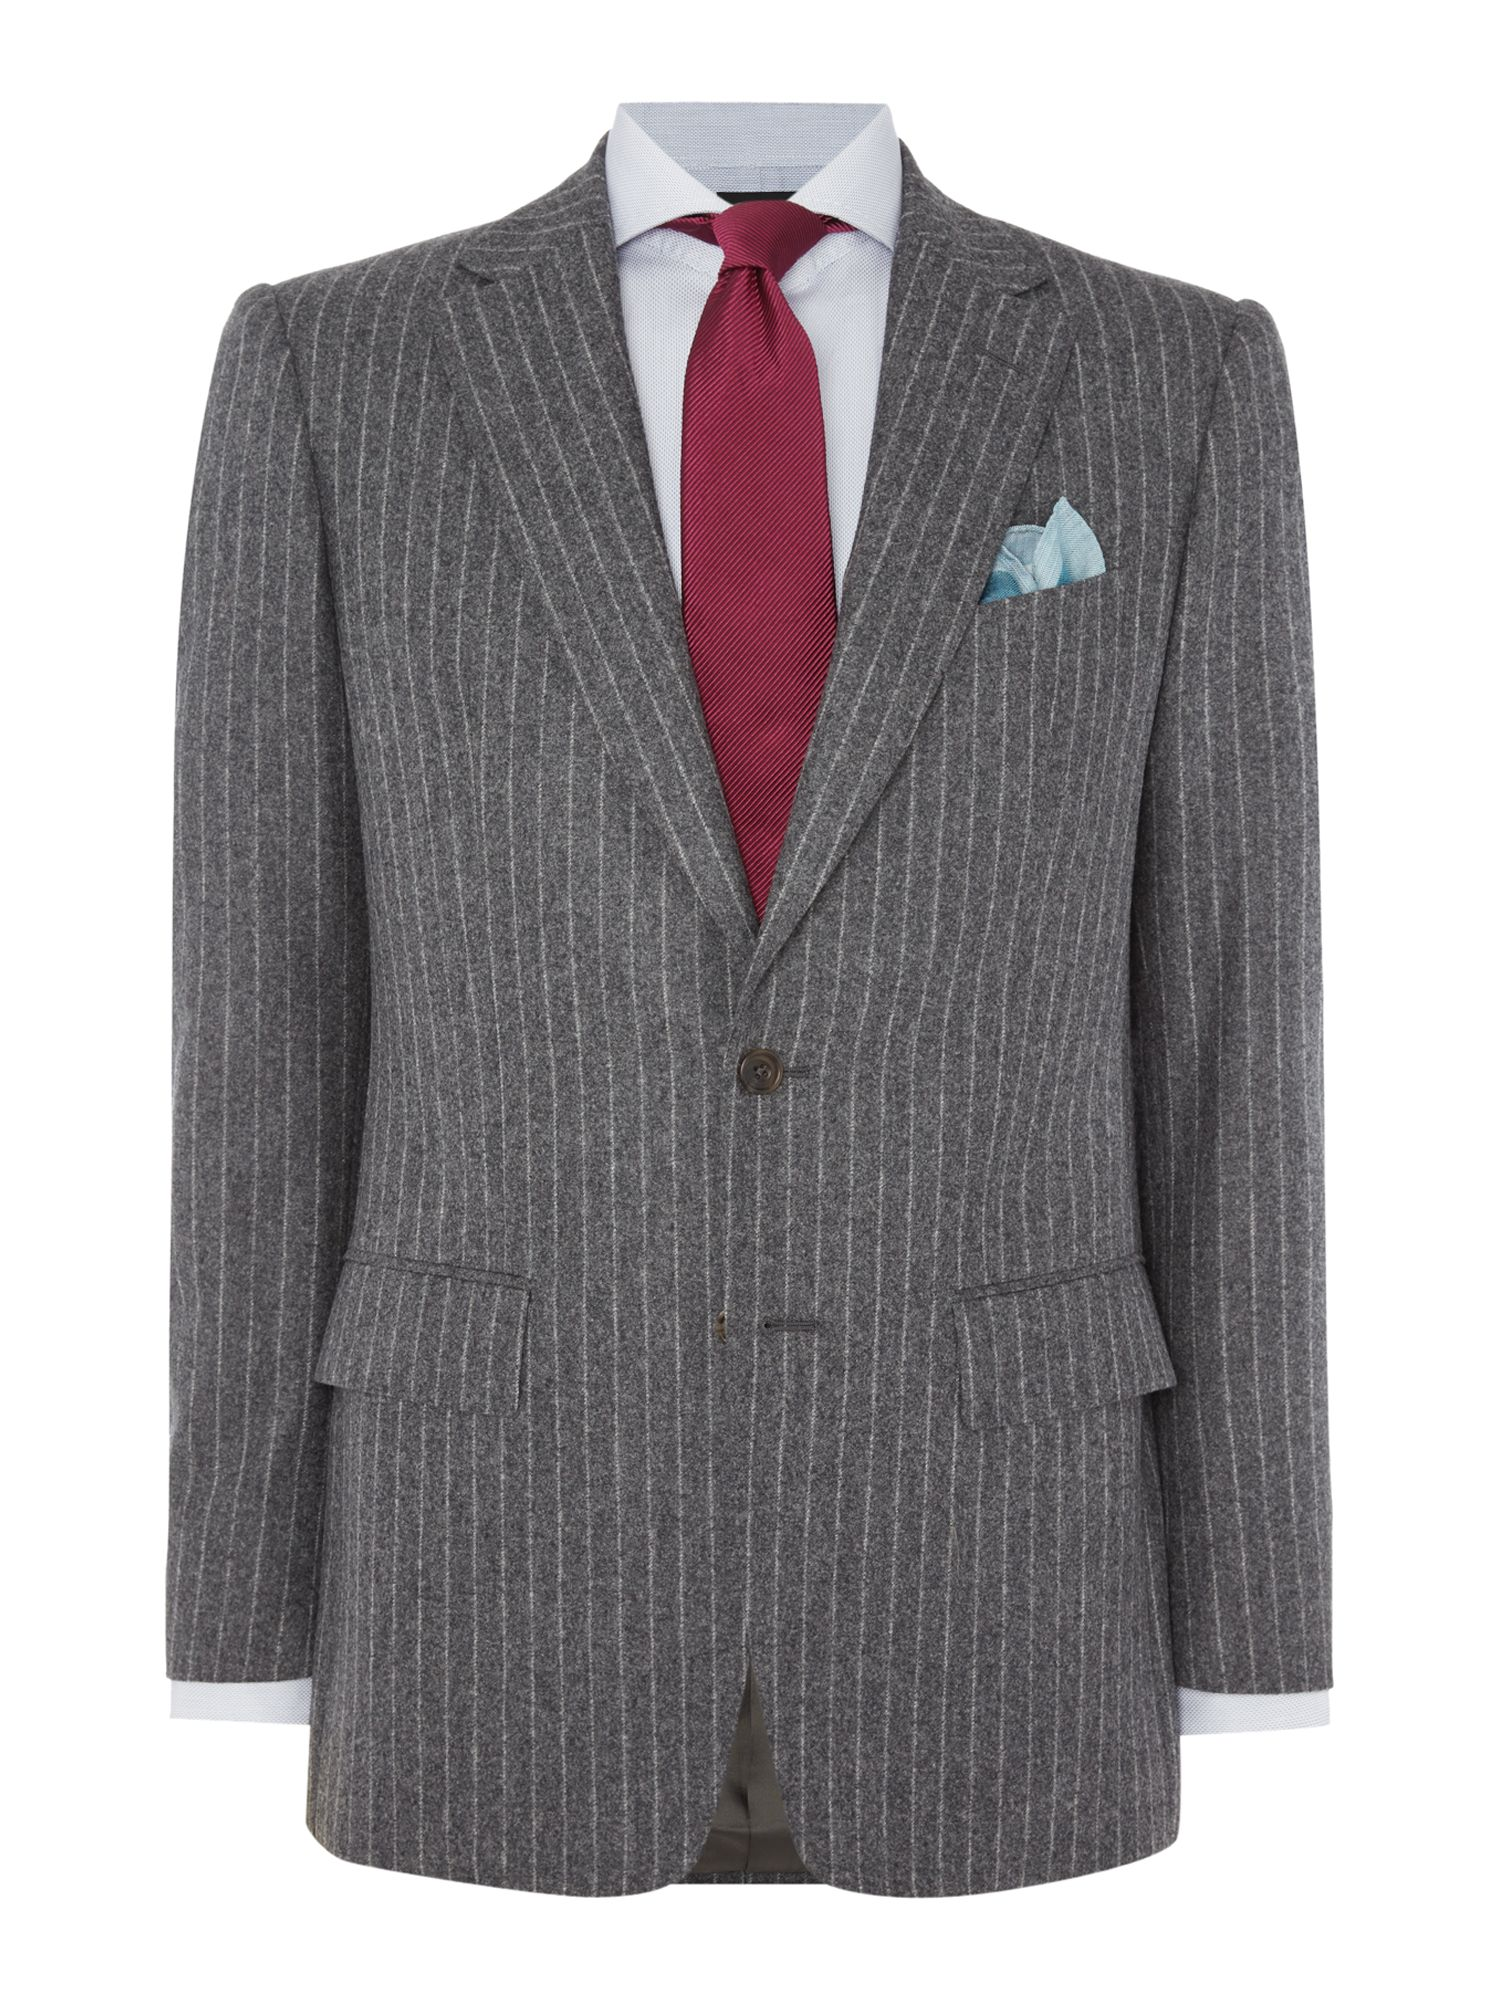 Chester Barrie Men's Chester Barrie Elverton Flannel Chalkstripe Suit, Grey